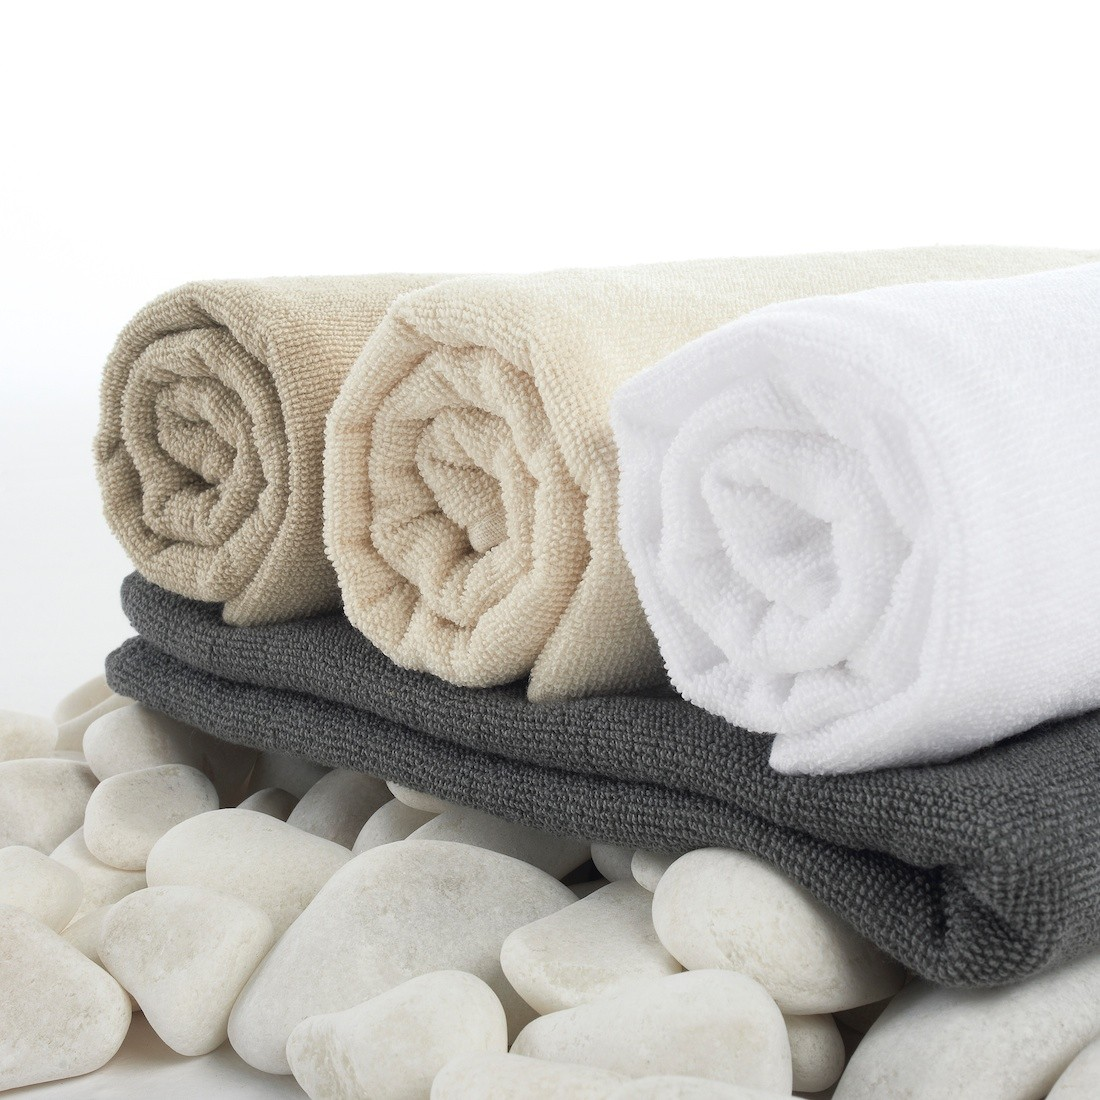 Choosing the Right Towels for Your Spa